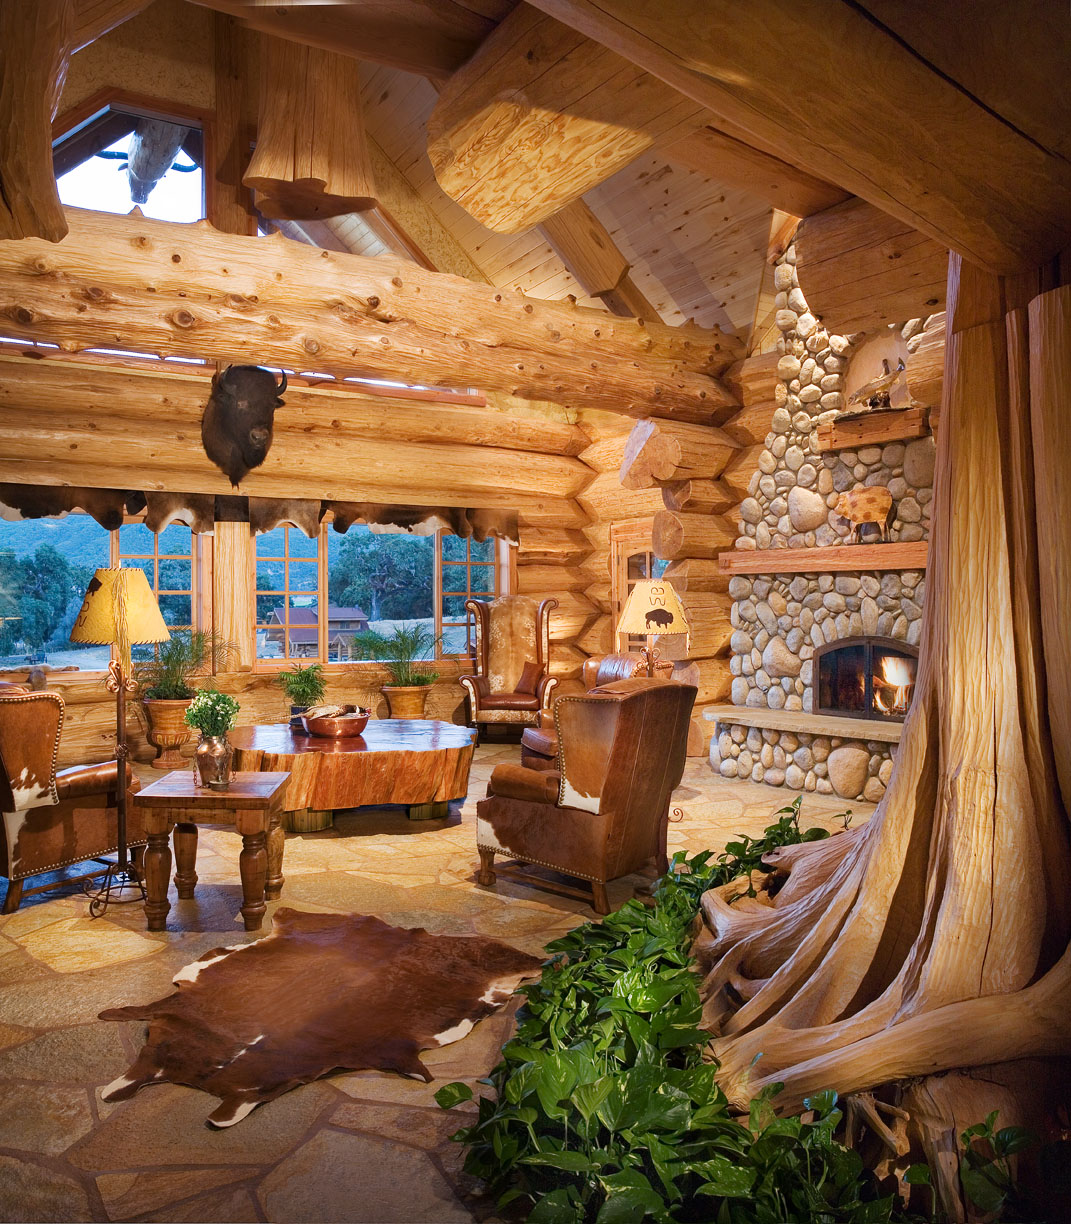 Nature Inspires The Look Of The Living Room.